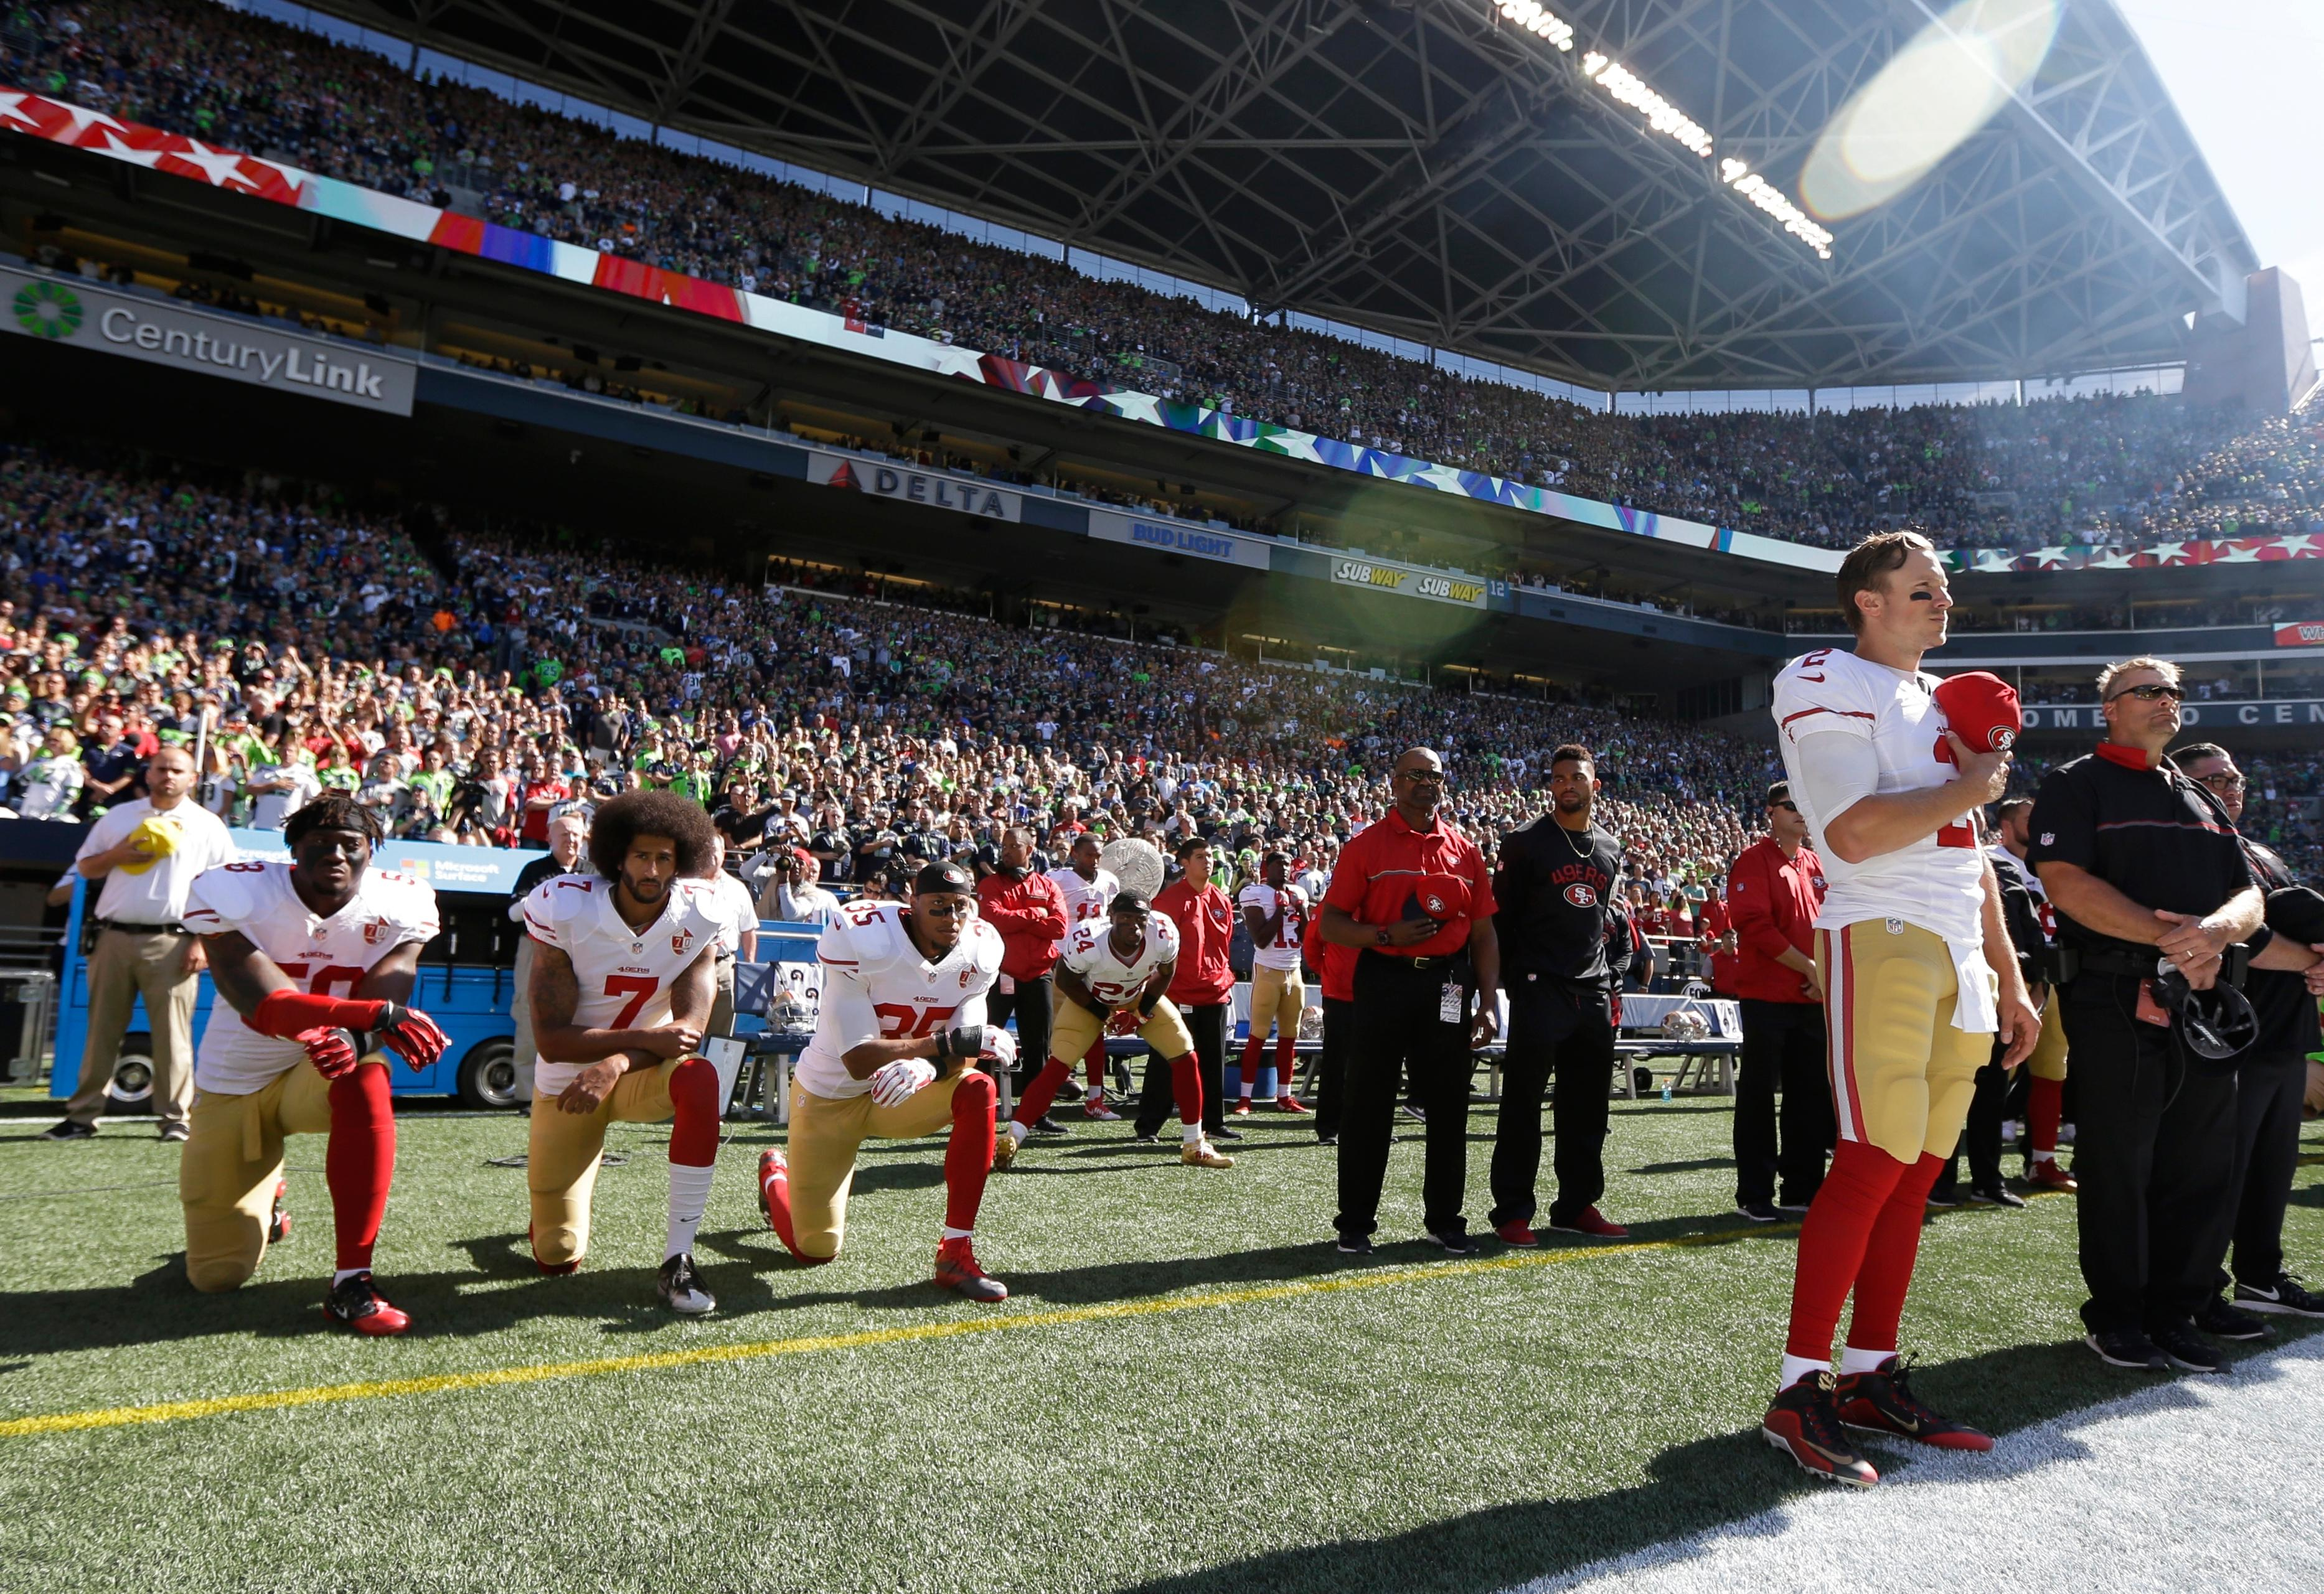 FILE - In this Sept. 25, 2016, file photo, San Francisco 49ers Blaine Gabbert, right, stands as Eli Harold (58), Colin Kaepernick (7) and Eric Reid (35) kneel during the national anthem before an NFL football game against the Seattle Seahawks in Seattle. {&amp;nbsp;}(AP Photo/Ted S. Warren, File)<p></p>